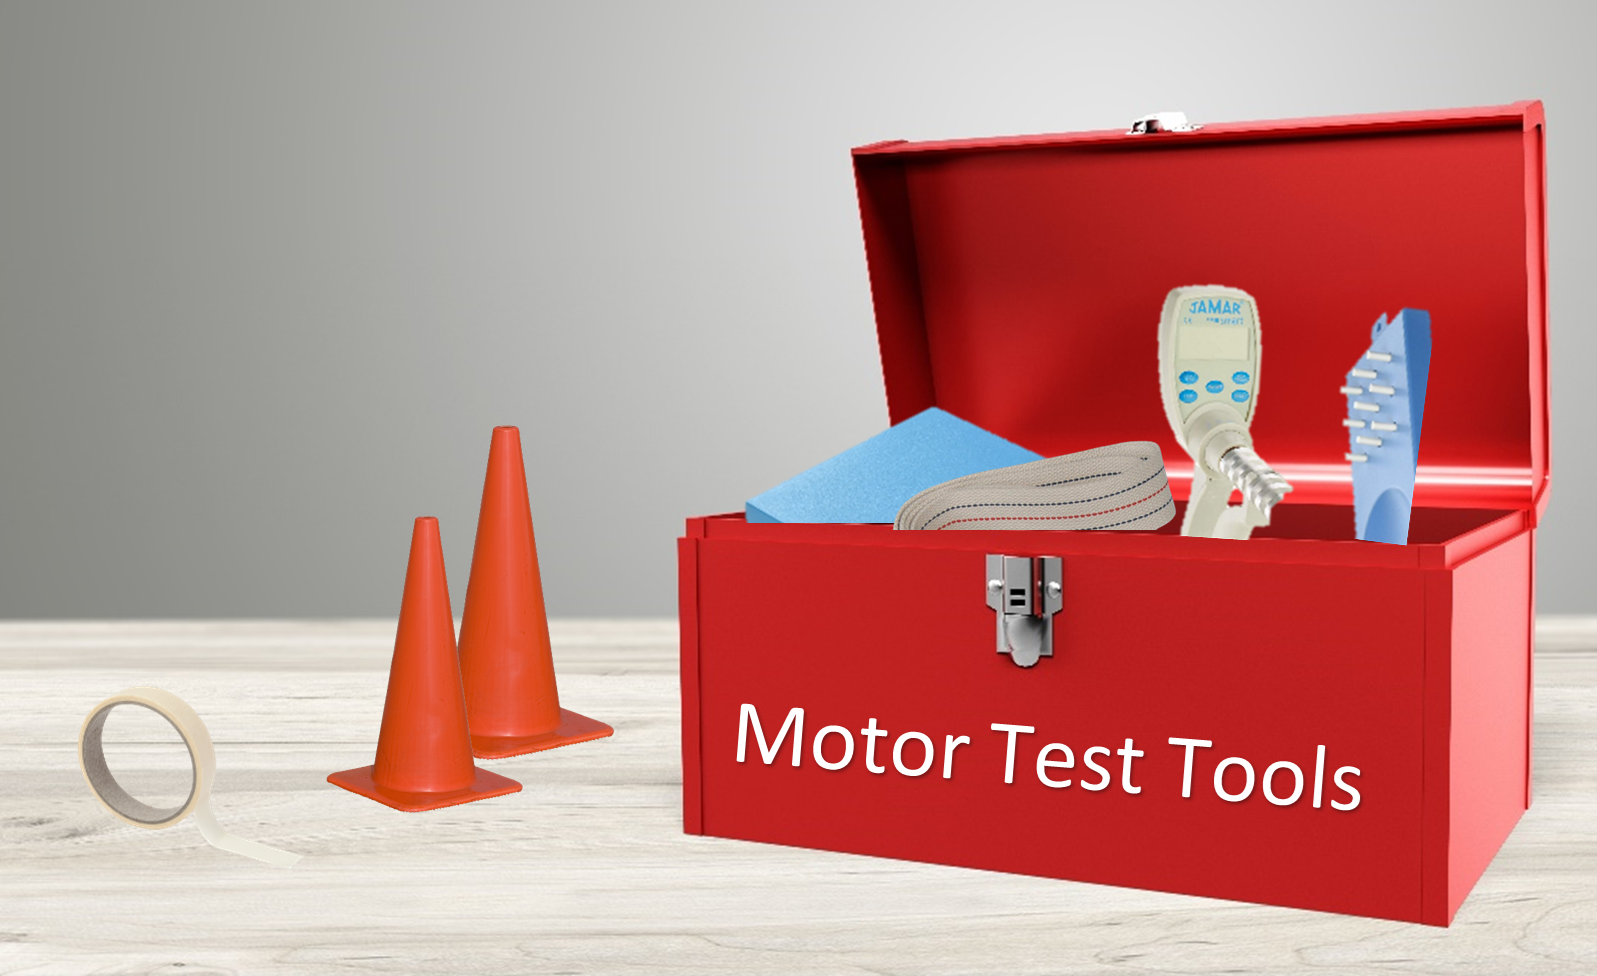 NIH Motor Test Toolbox filled with helpful products